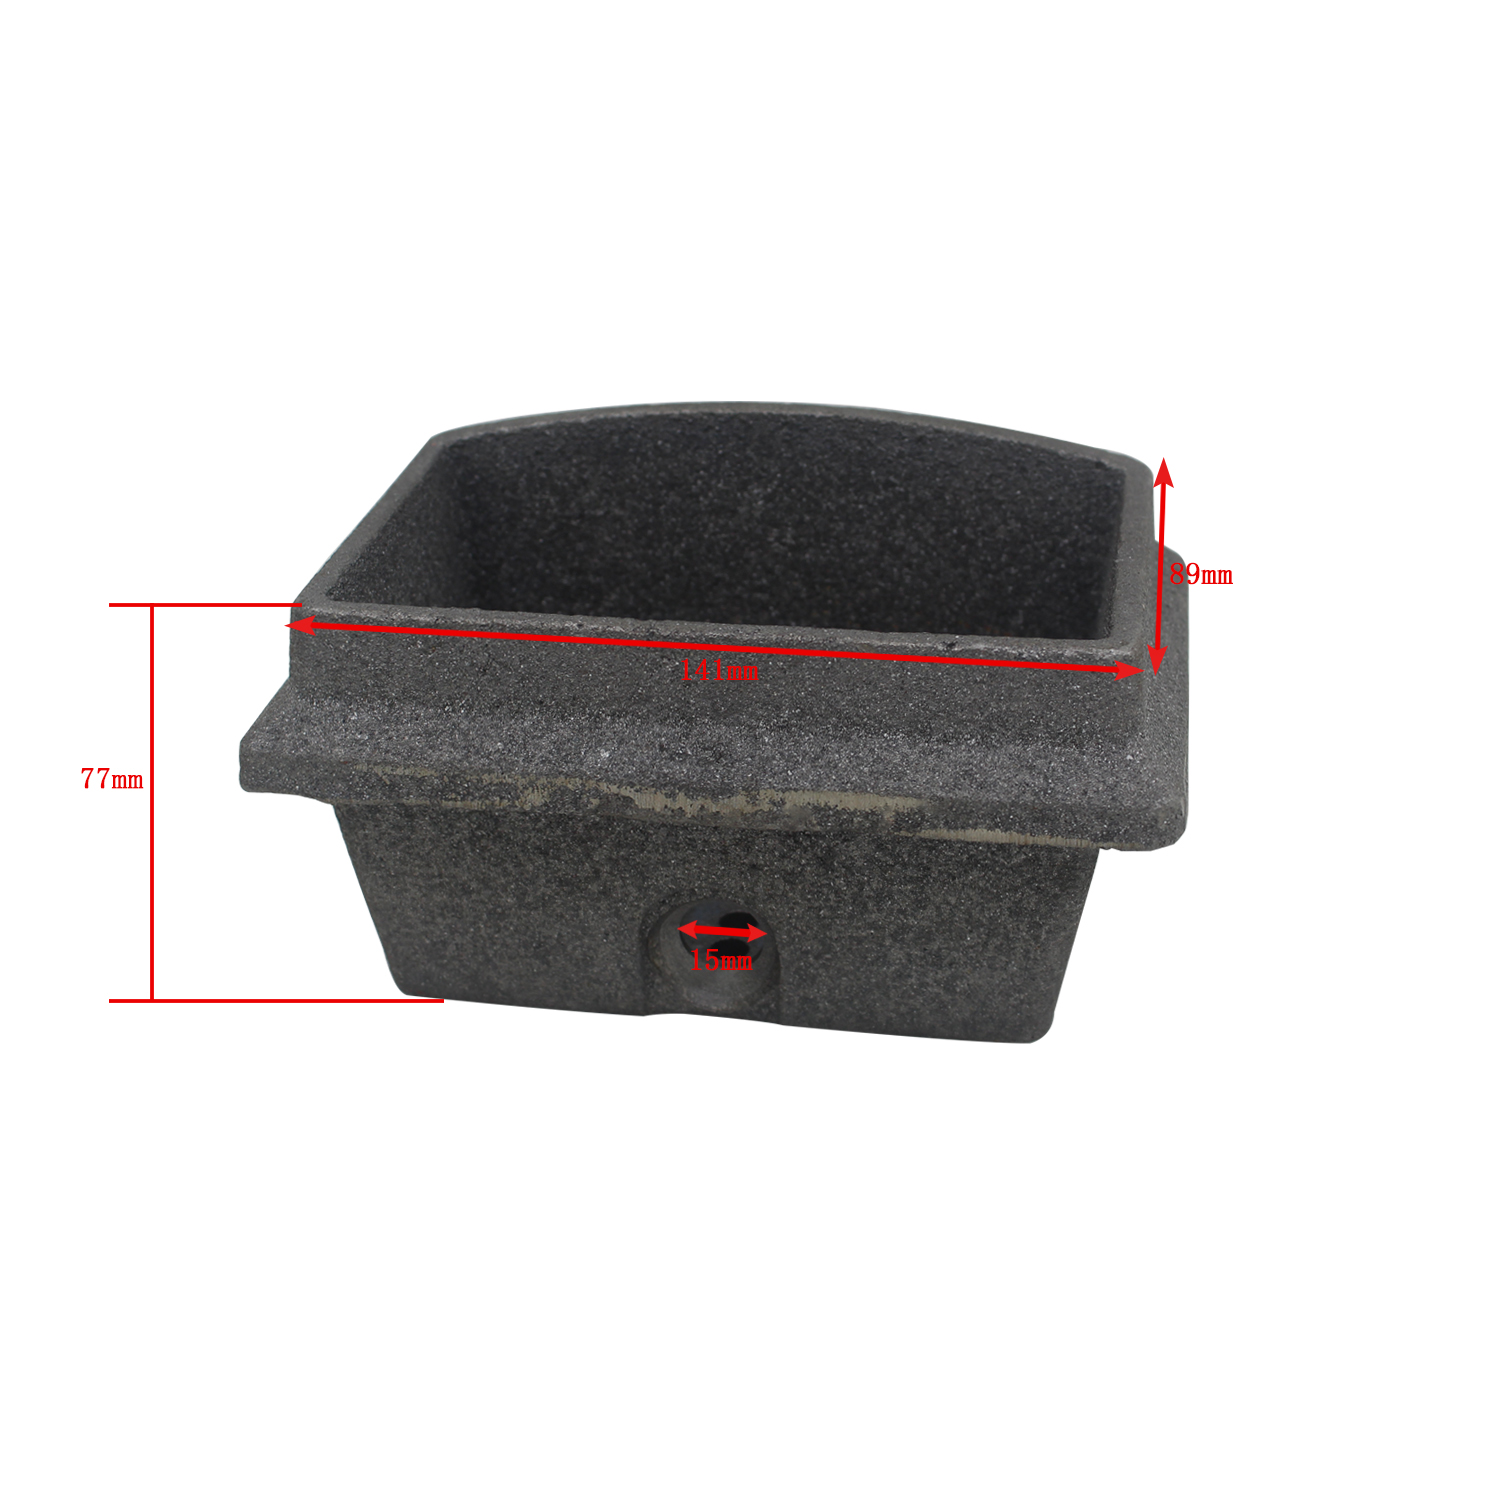 Pellet Stove Burn Pot Replacement Burning Insert Burner For Pellet Stove Biomass Furnace Pellet Cast Iron Brazier Fireplace